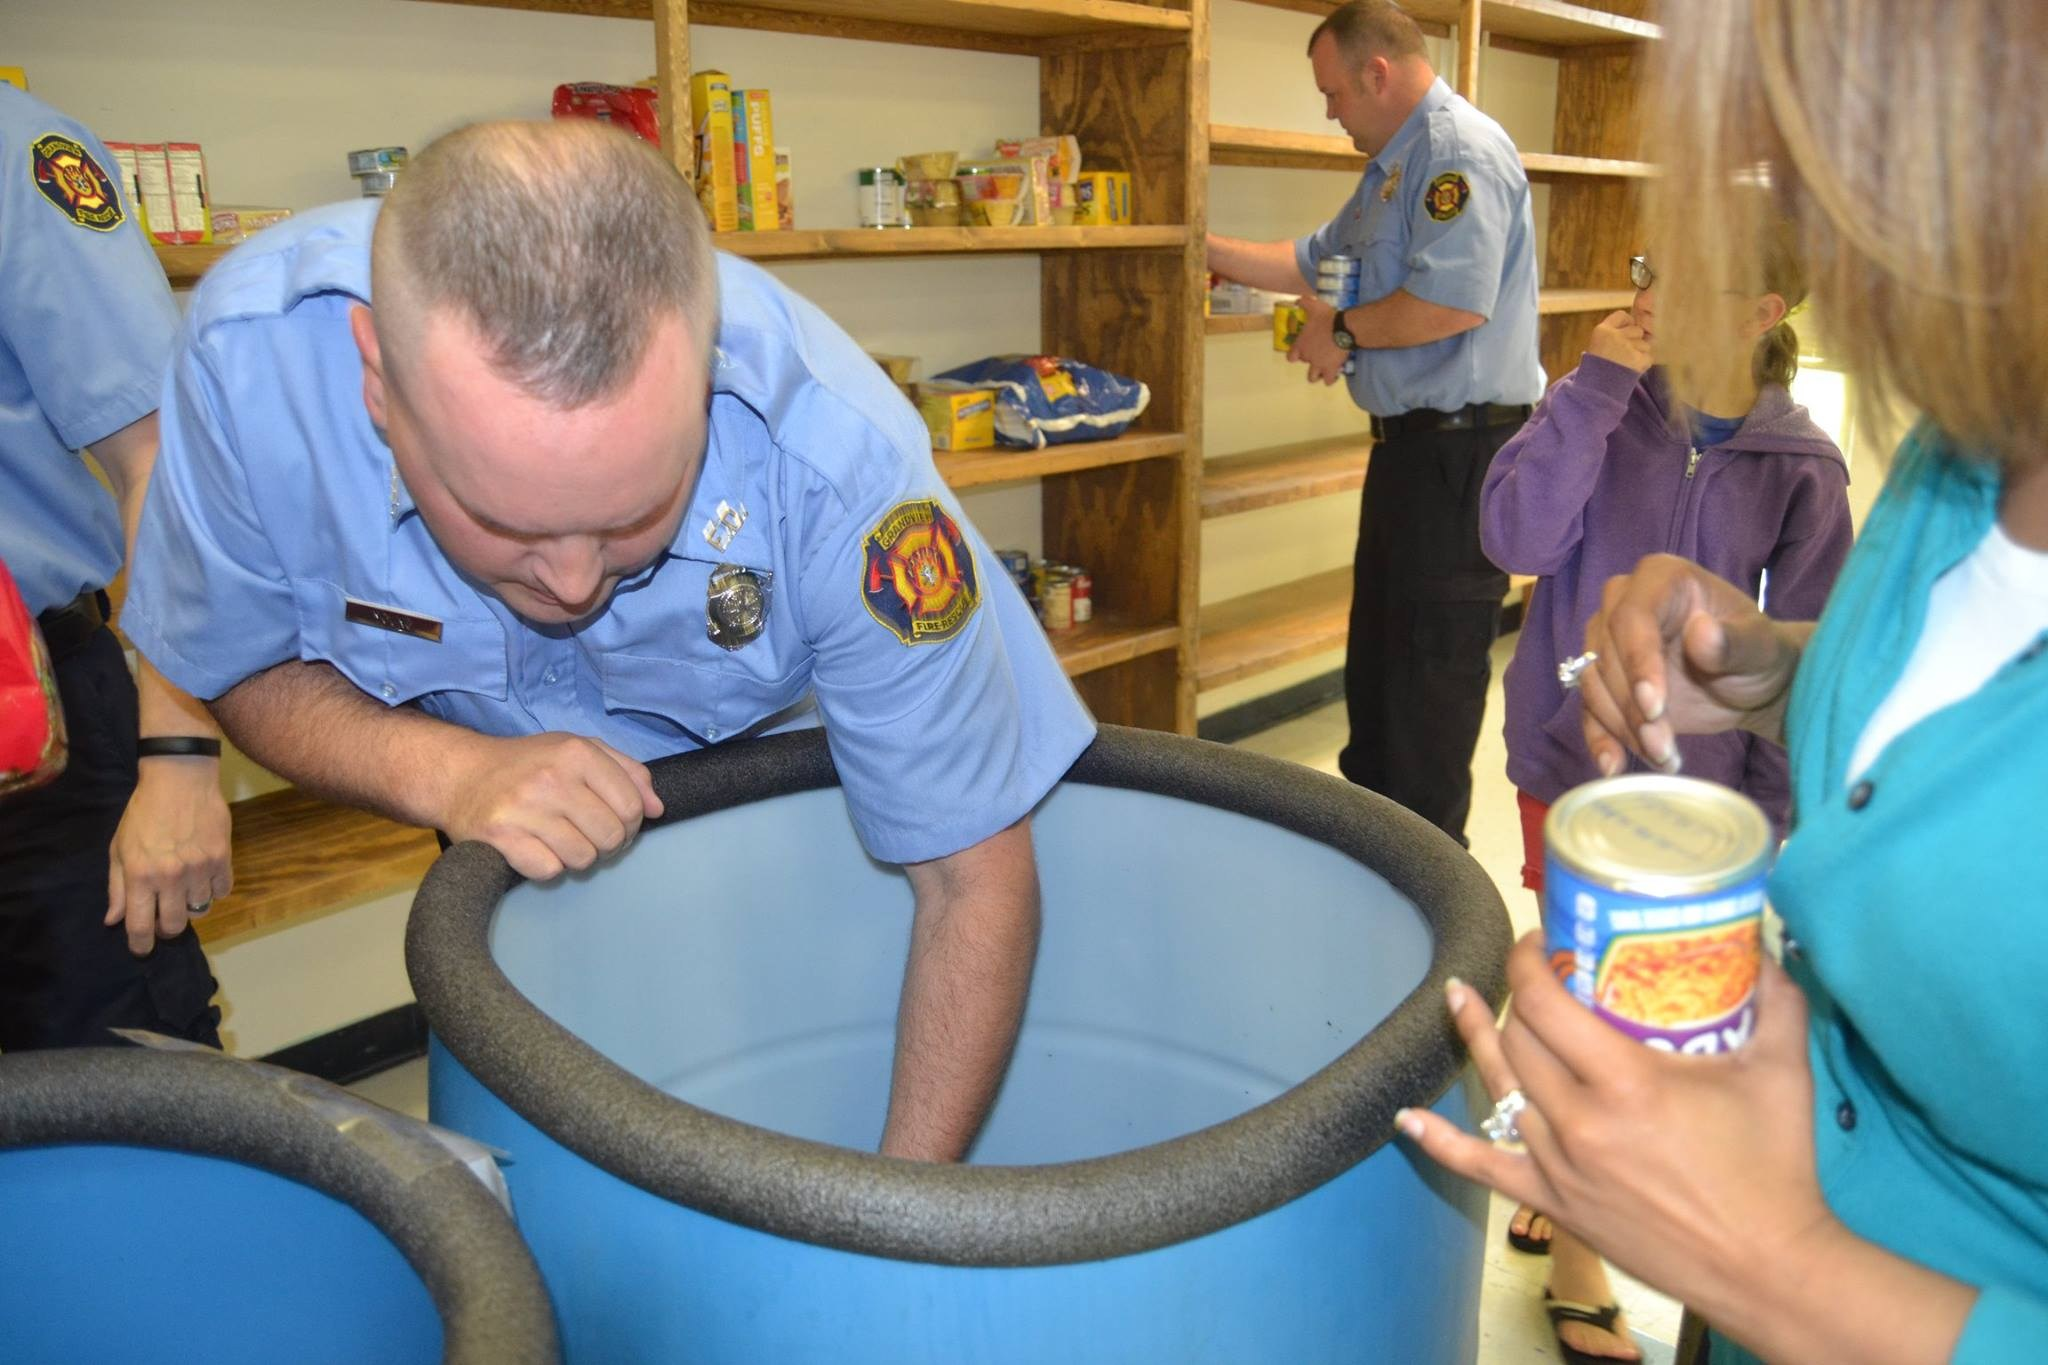 Firefighter emptying a blue barrel of food for High Grove families